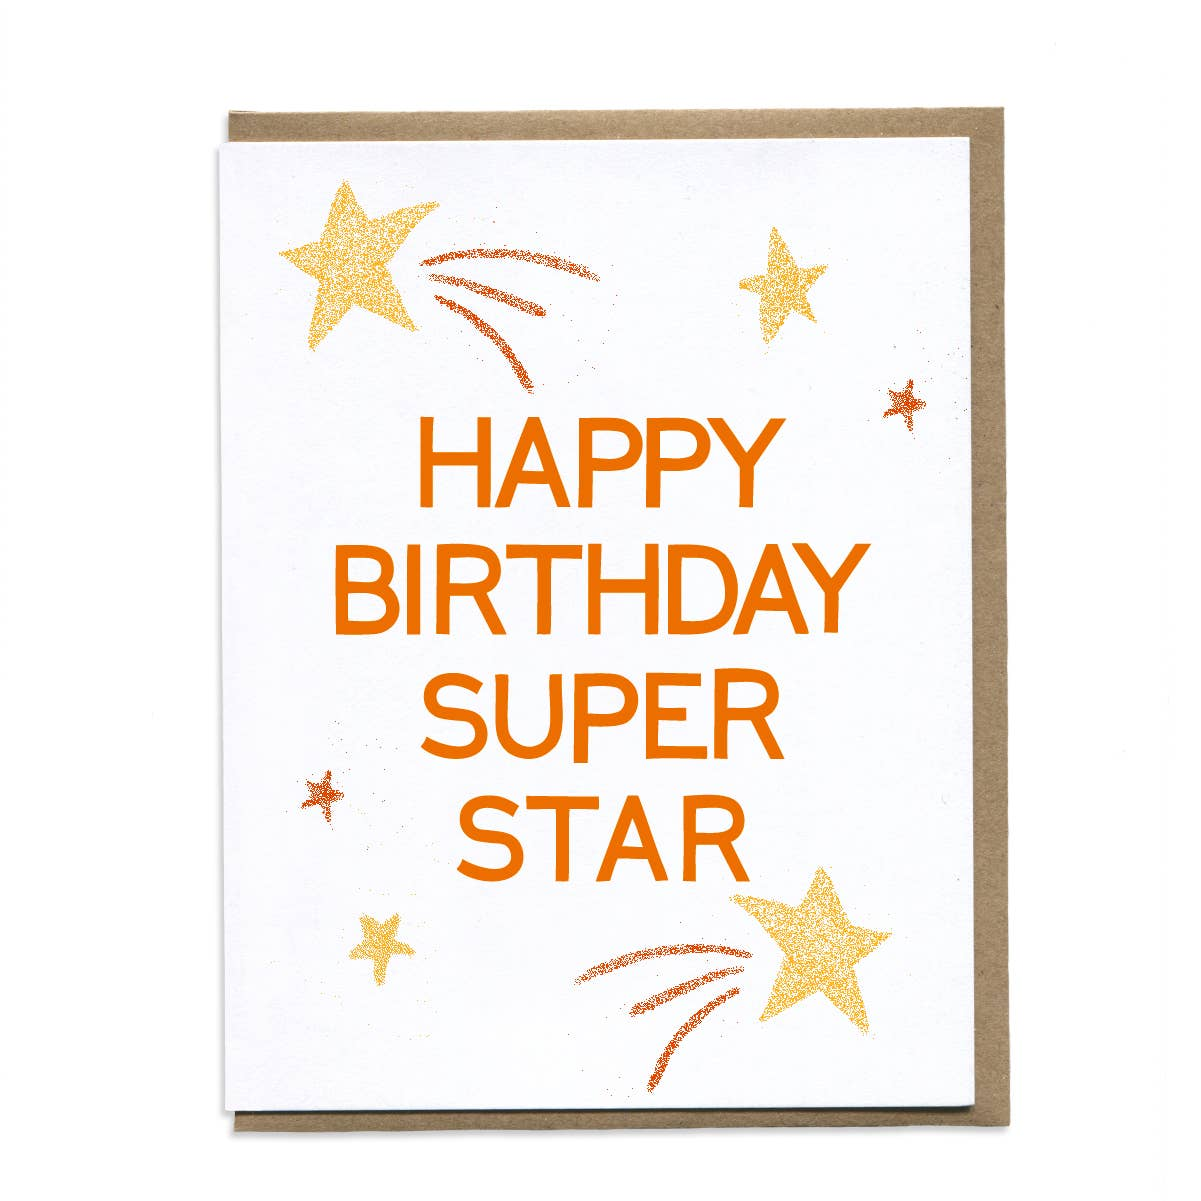 HBD Super Star greeting card